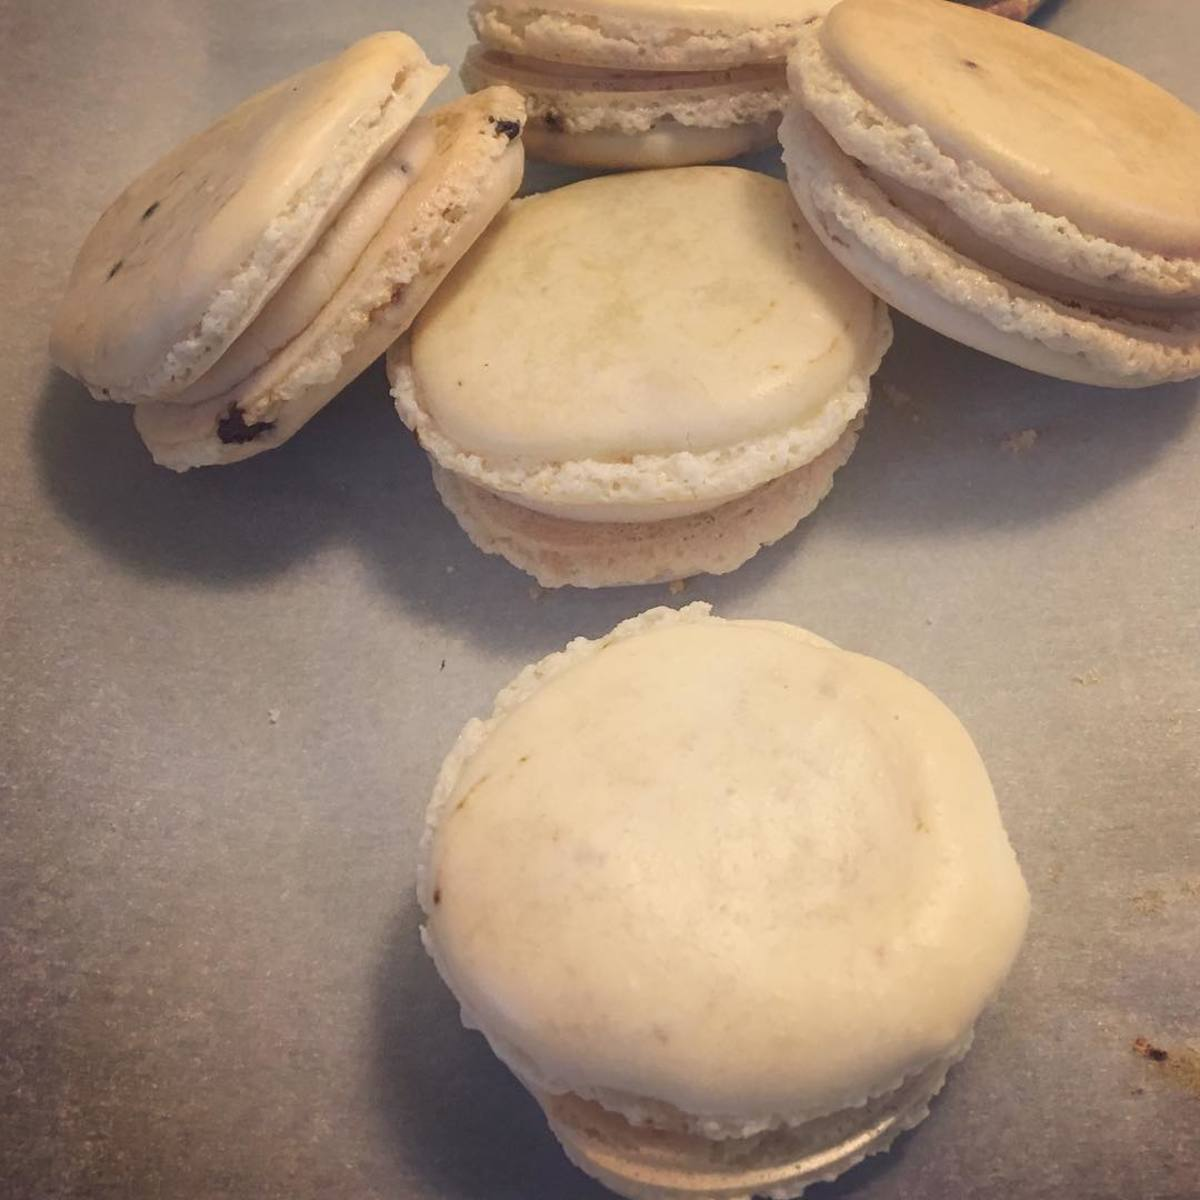 My Journey With the French Macaron